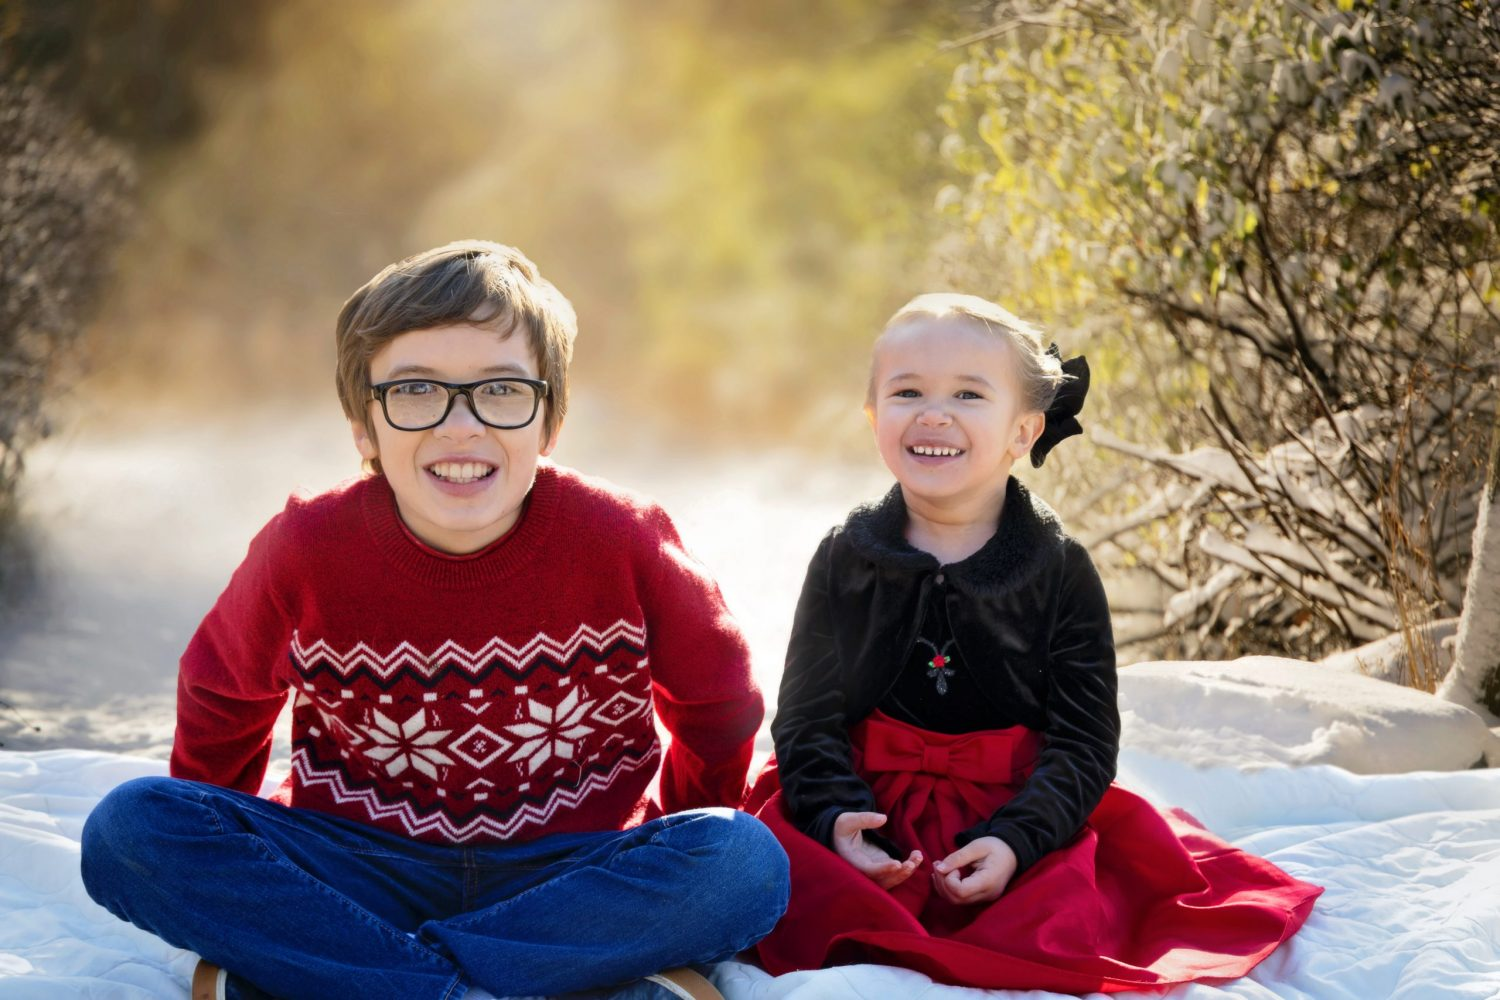 kids-on-snowy-tree-backdrop-with-blanket